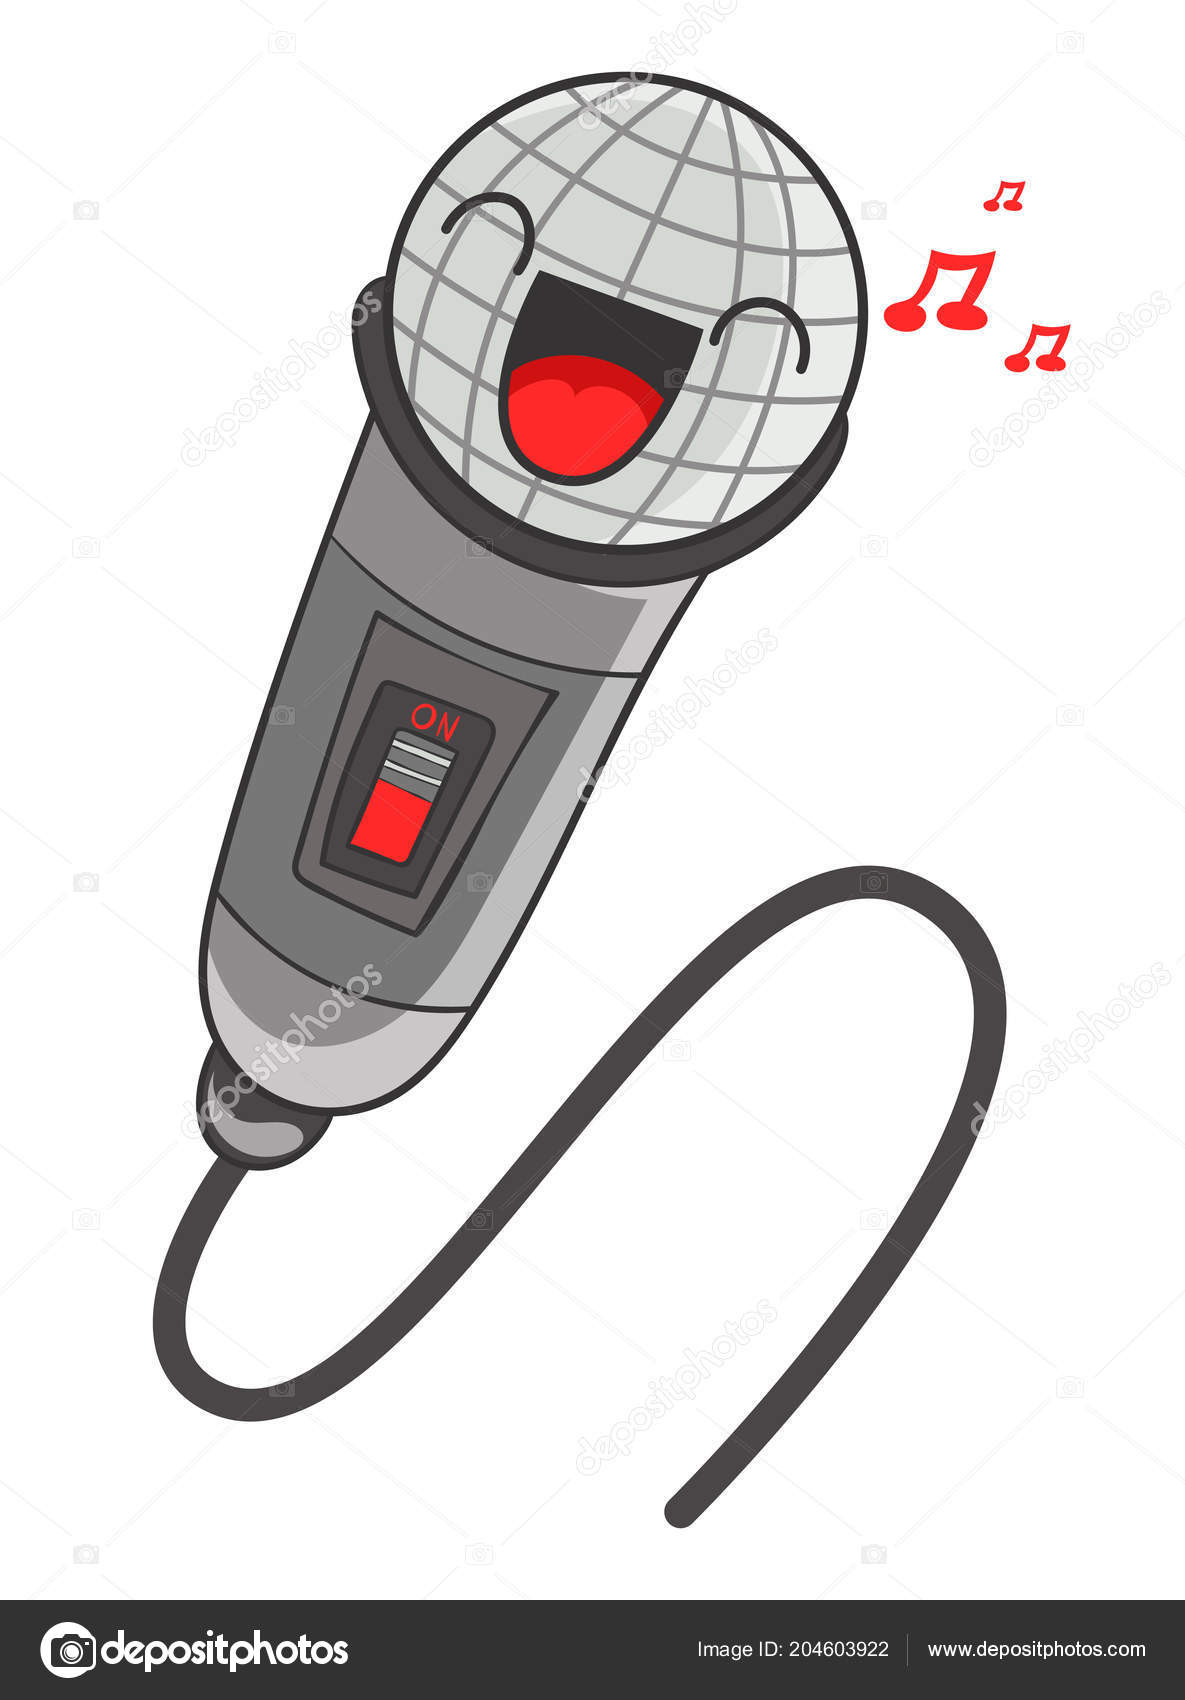 Amigo Secreto - PRESENTES Depositphotos_204603922-stock-illustration-cartoon-microphone-vector-illustration